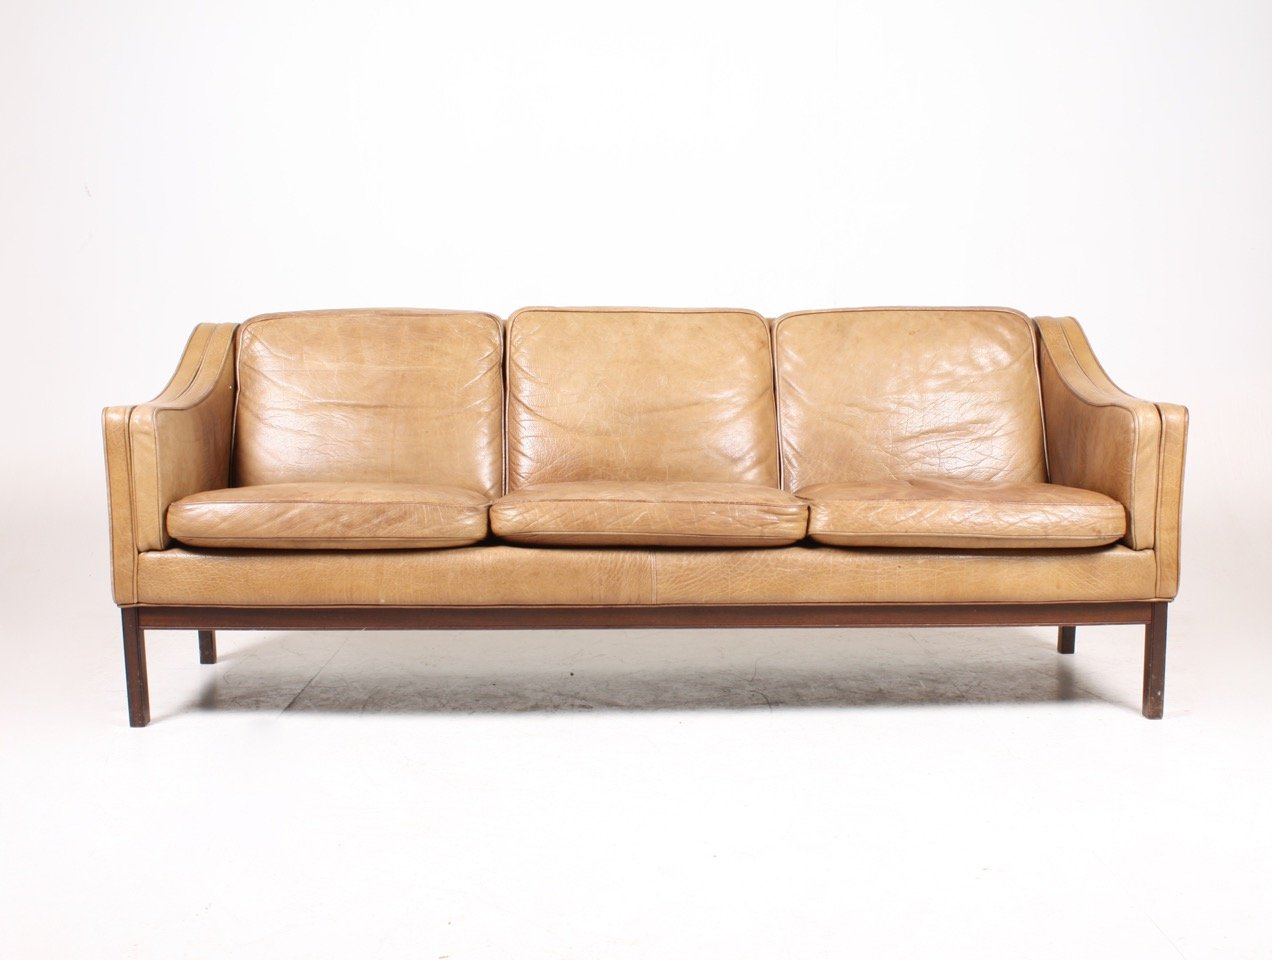 Vintage danish three seater tan leather sofa 1970s for for Danish design sofa